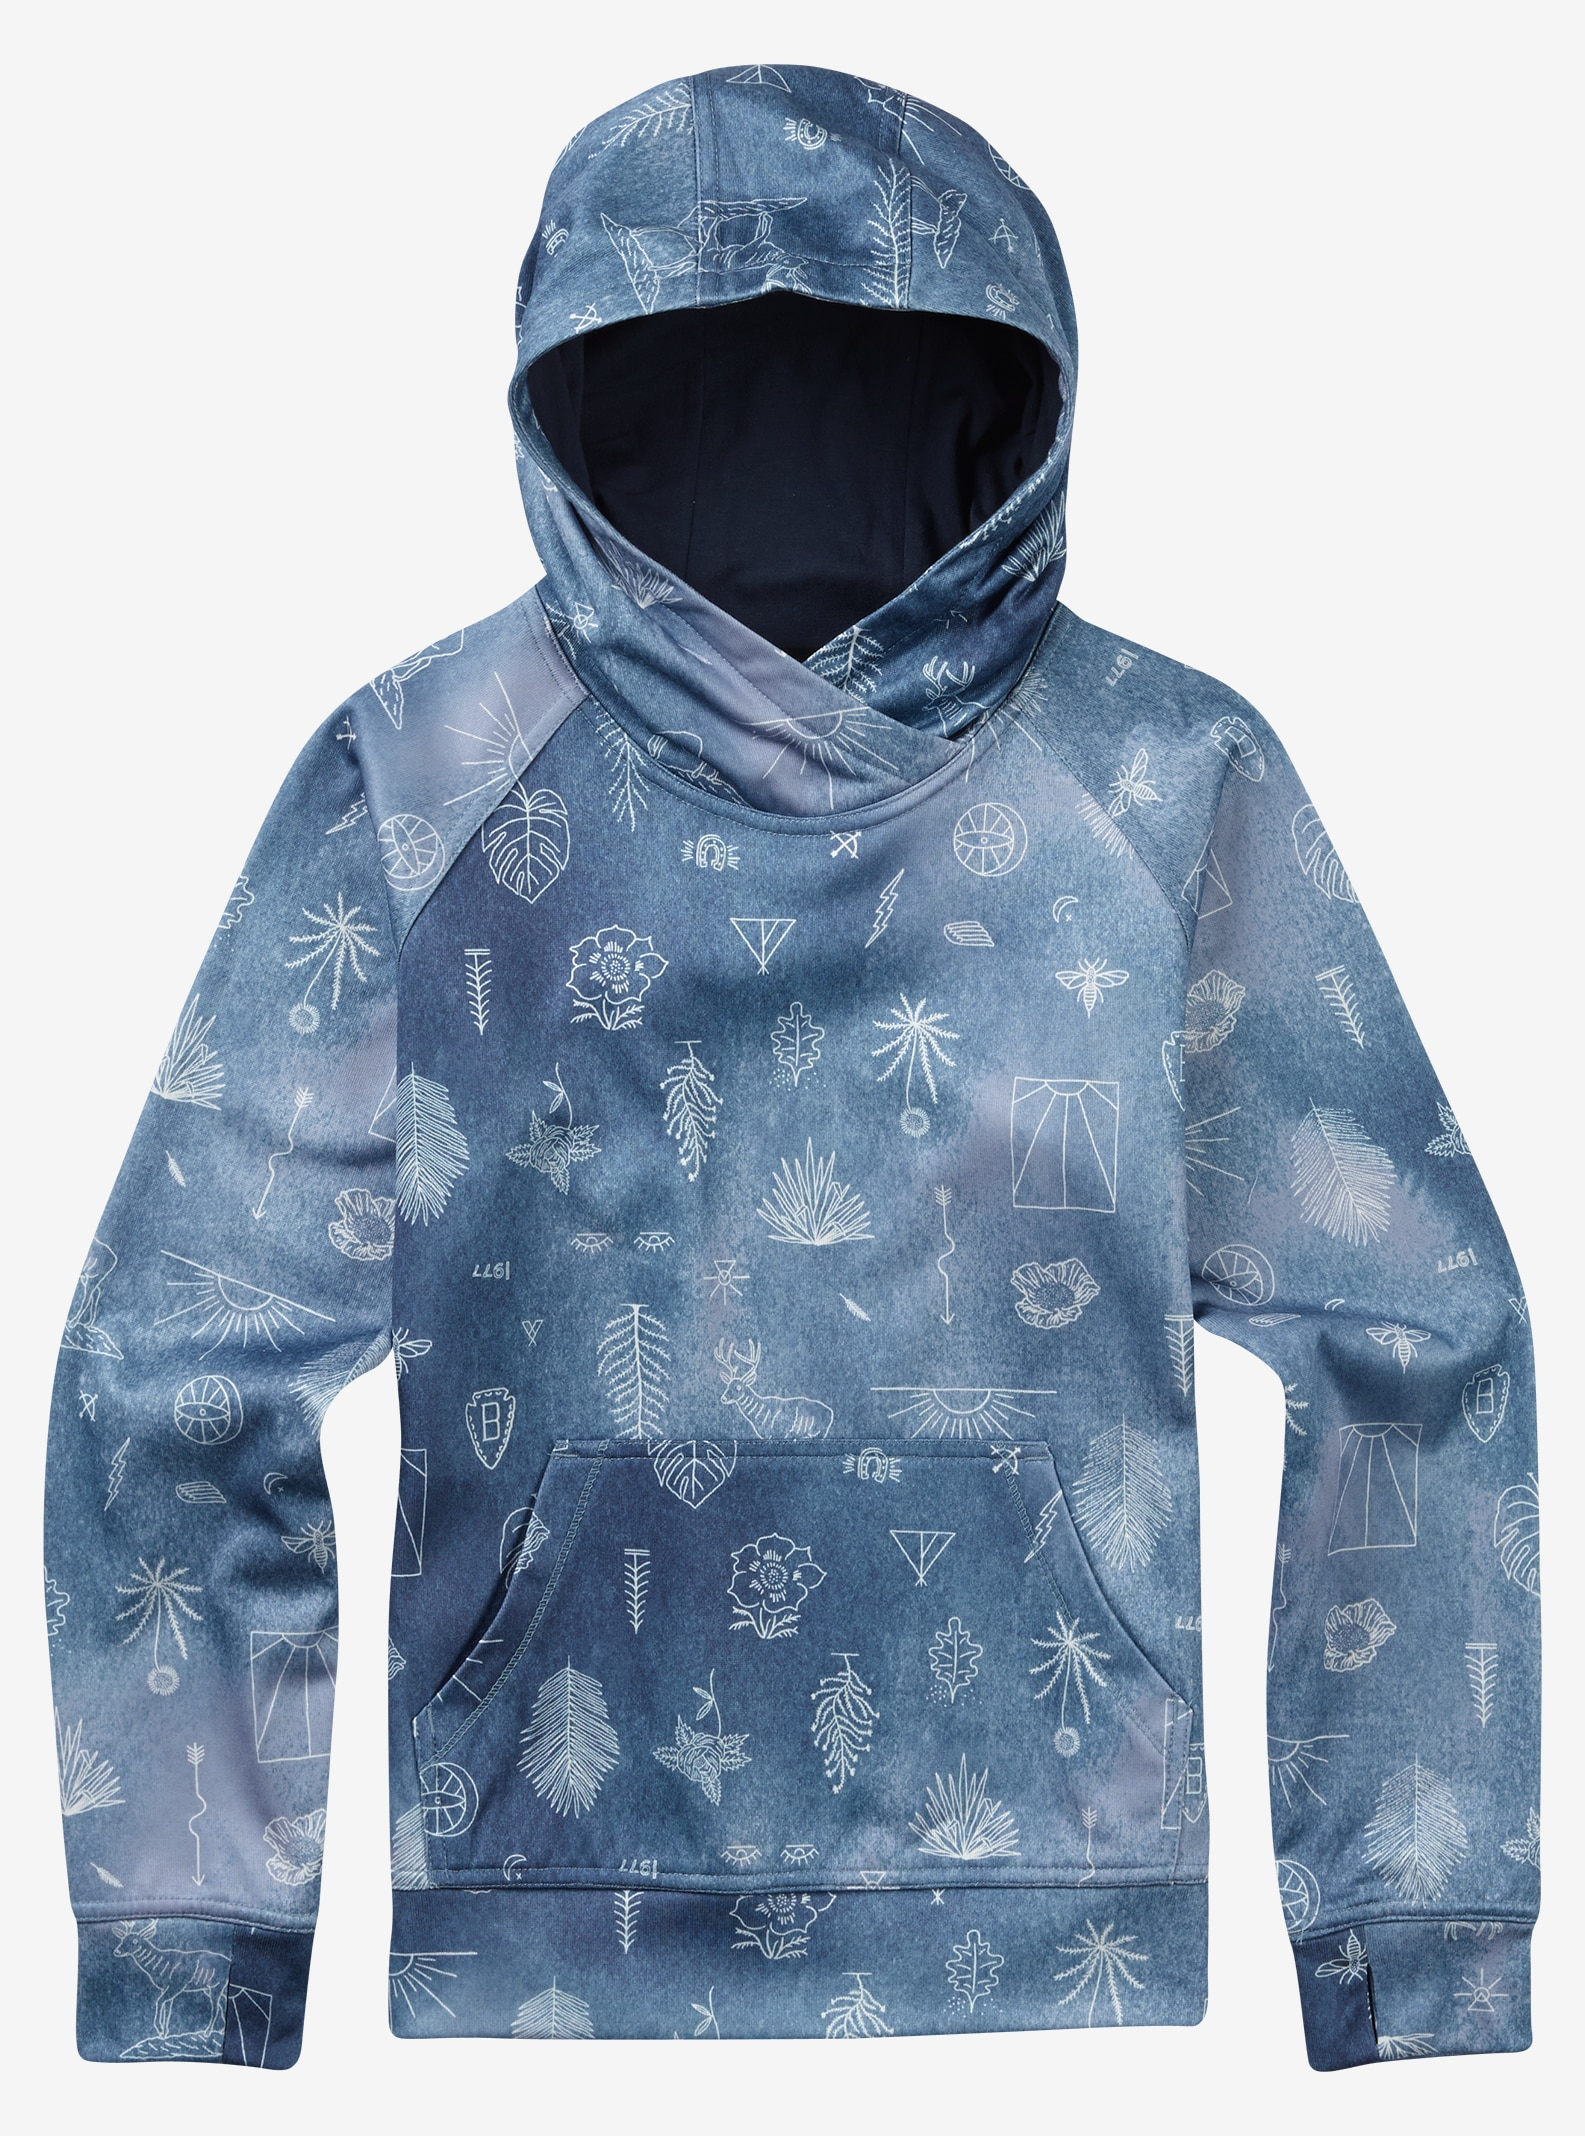 Burton Girls' Phantom Pullover Hoodie shown in Freedom